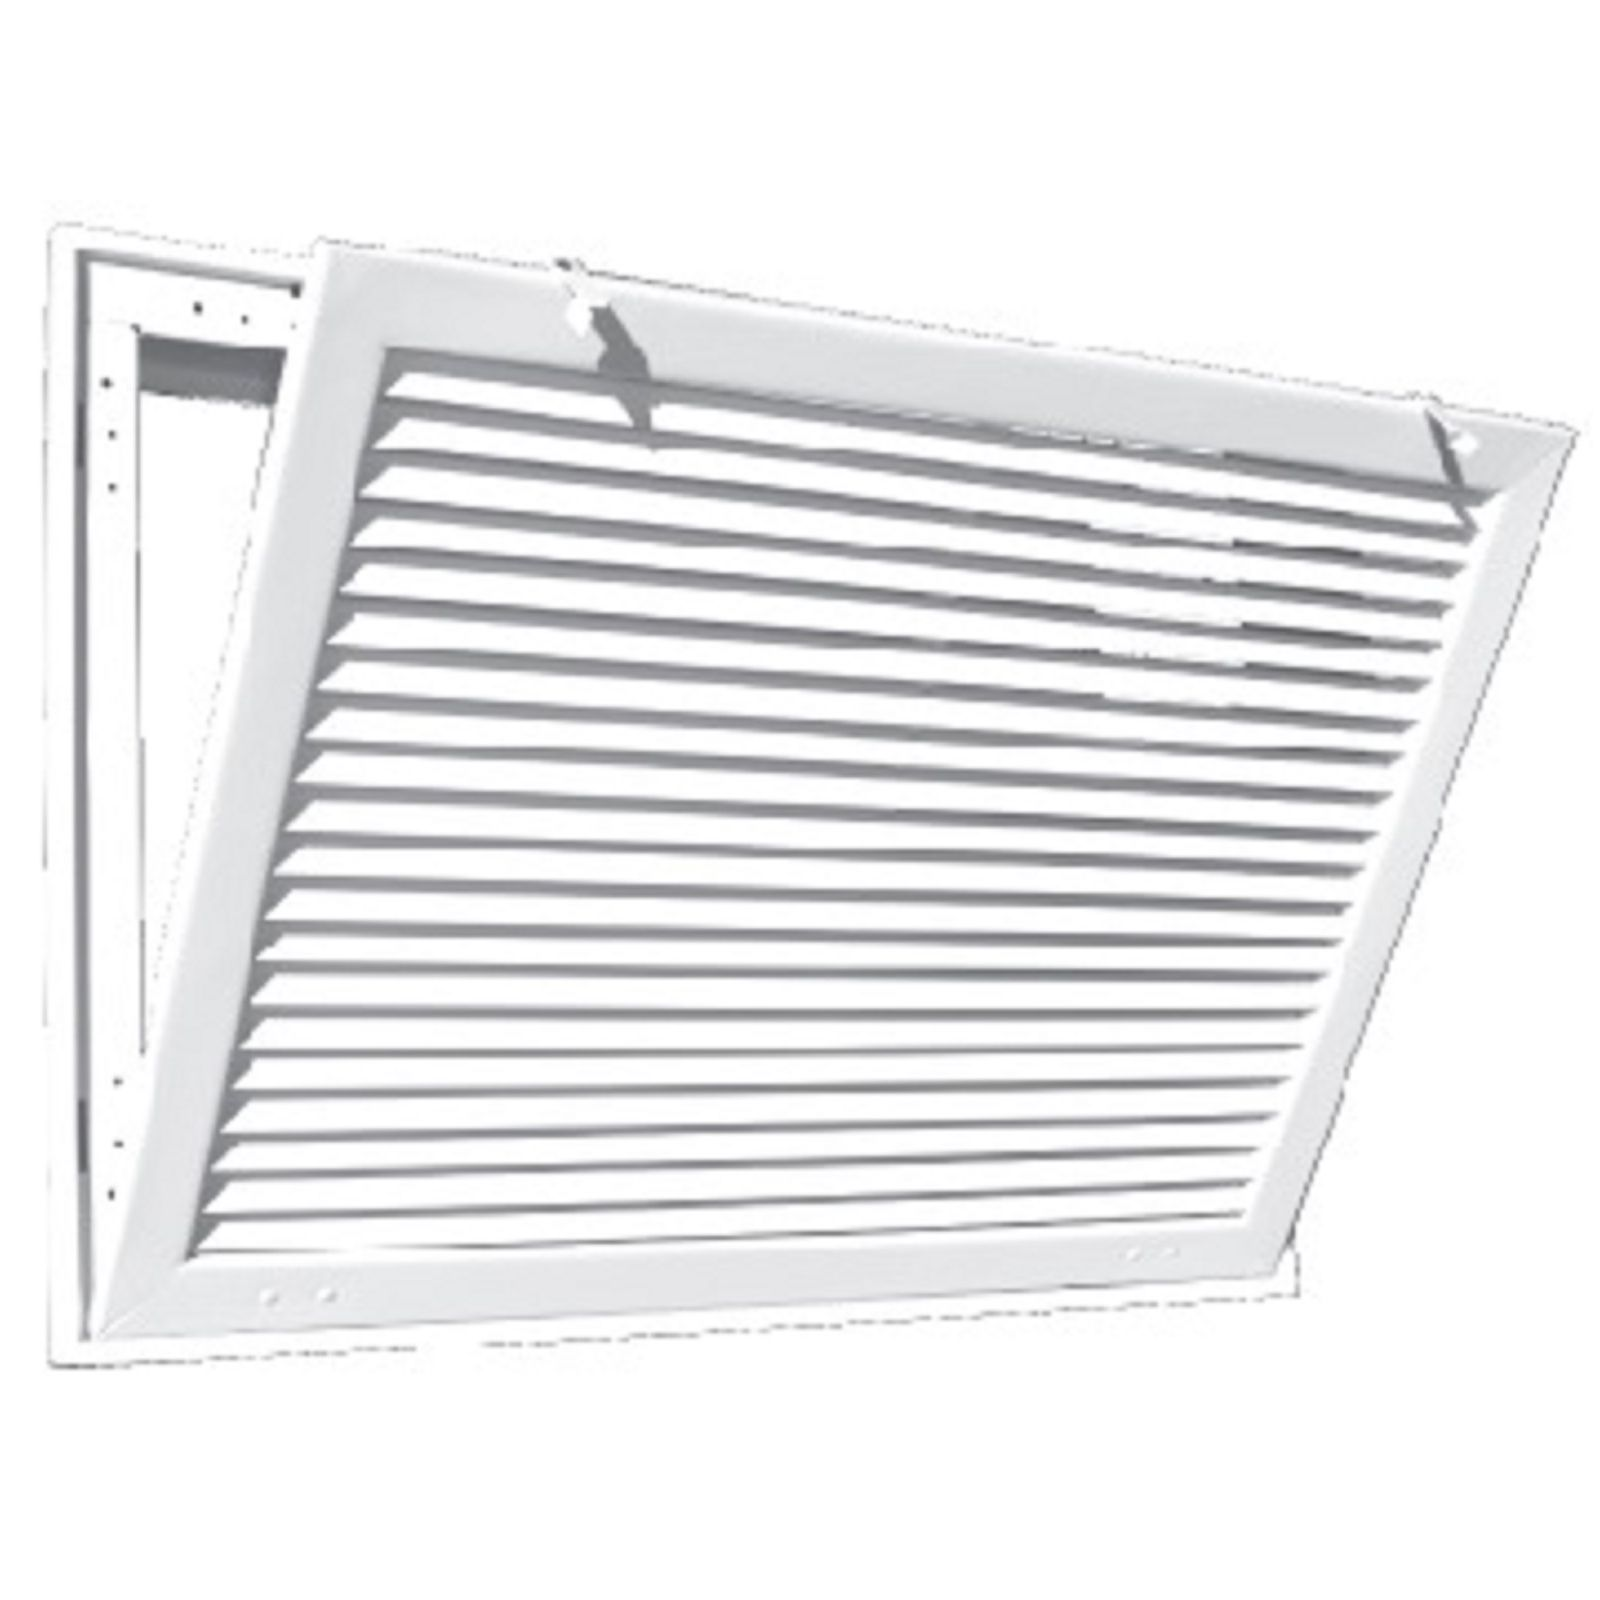 "TRUaire A290 20X24 - Aluminum Fixed Bar Return Air Filter Grille, White, 20"" X 24"""